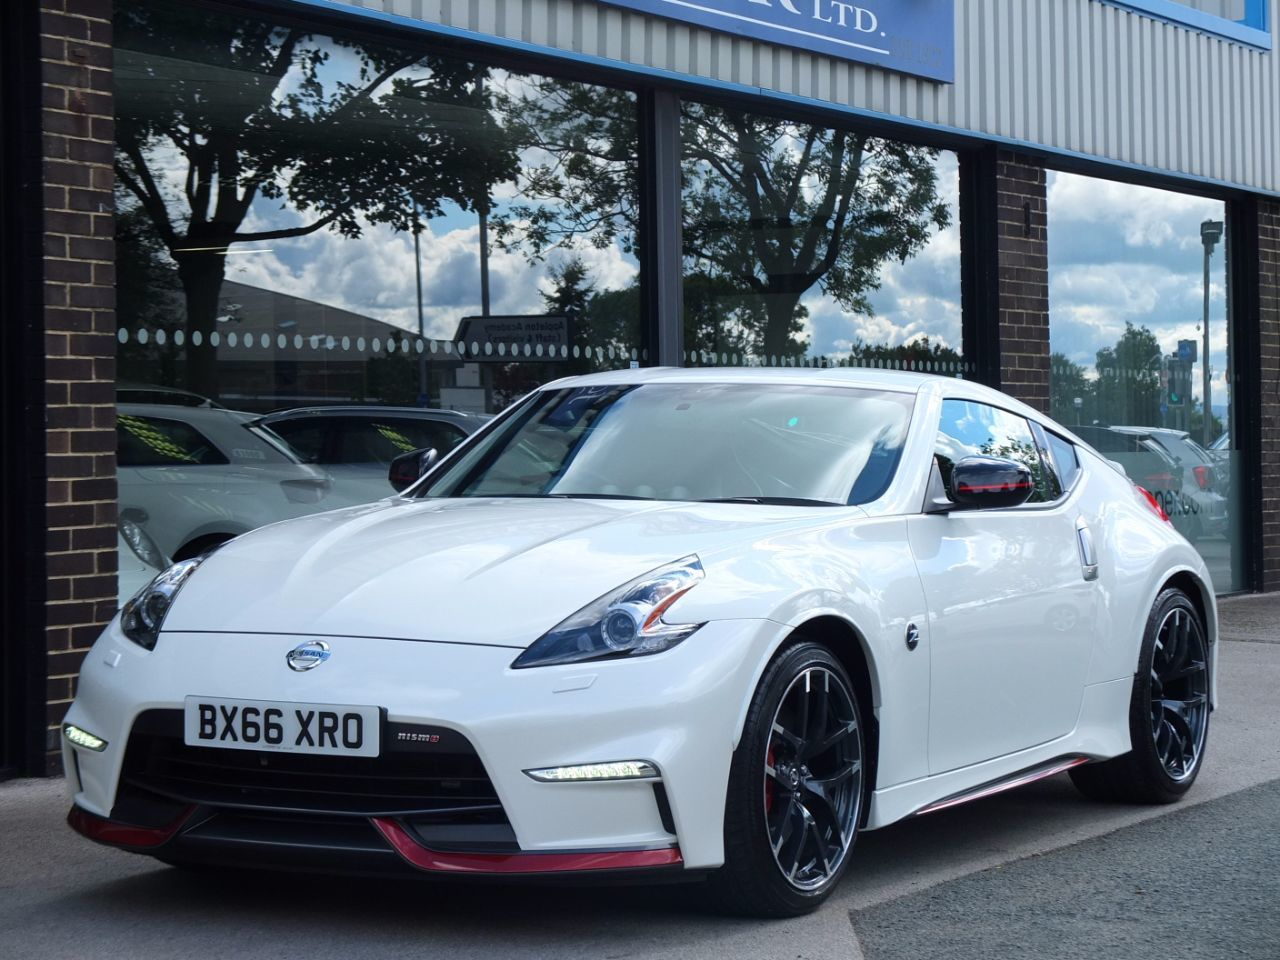 Nissan 370Z 3.7 V6 Nismo 344ps Coupe Petrol Storm White MetallicNissan 370Z 3.7 V6 Nismo 344ps Coupe Petrol Storm White Metallic at fa Roper Ltd Bradford